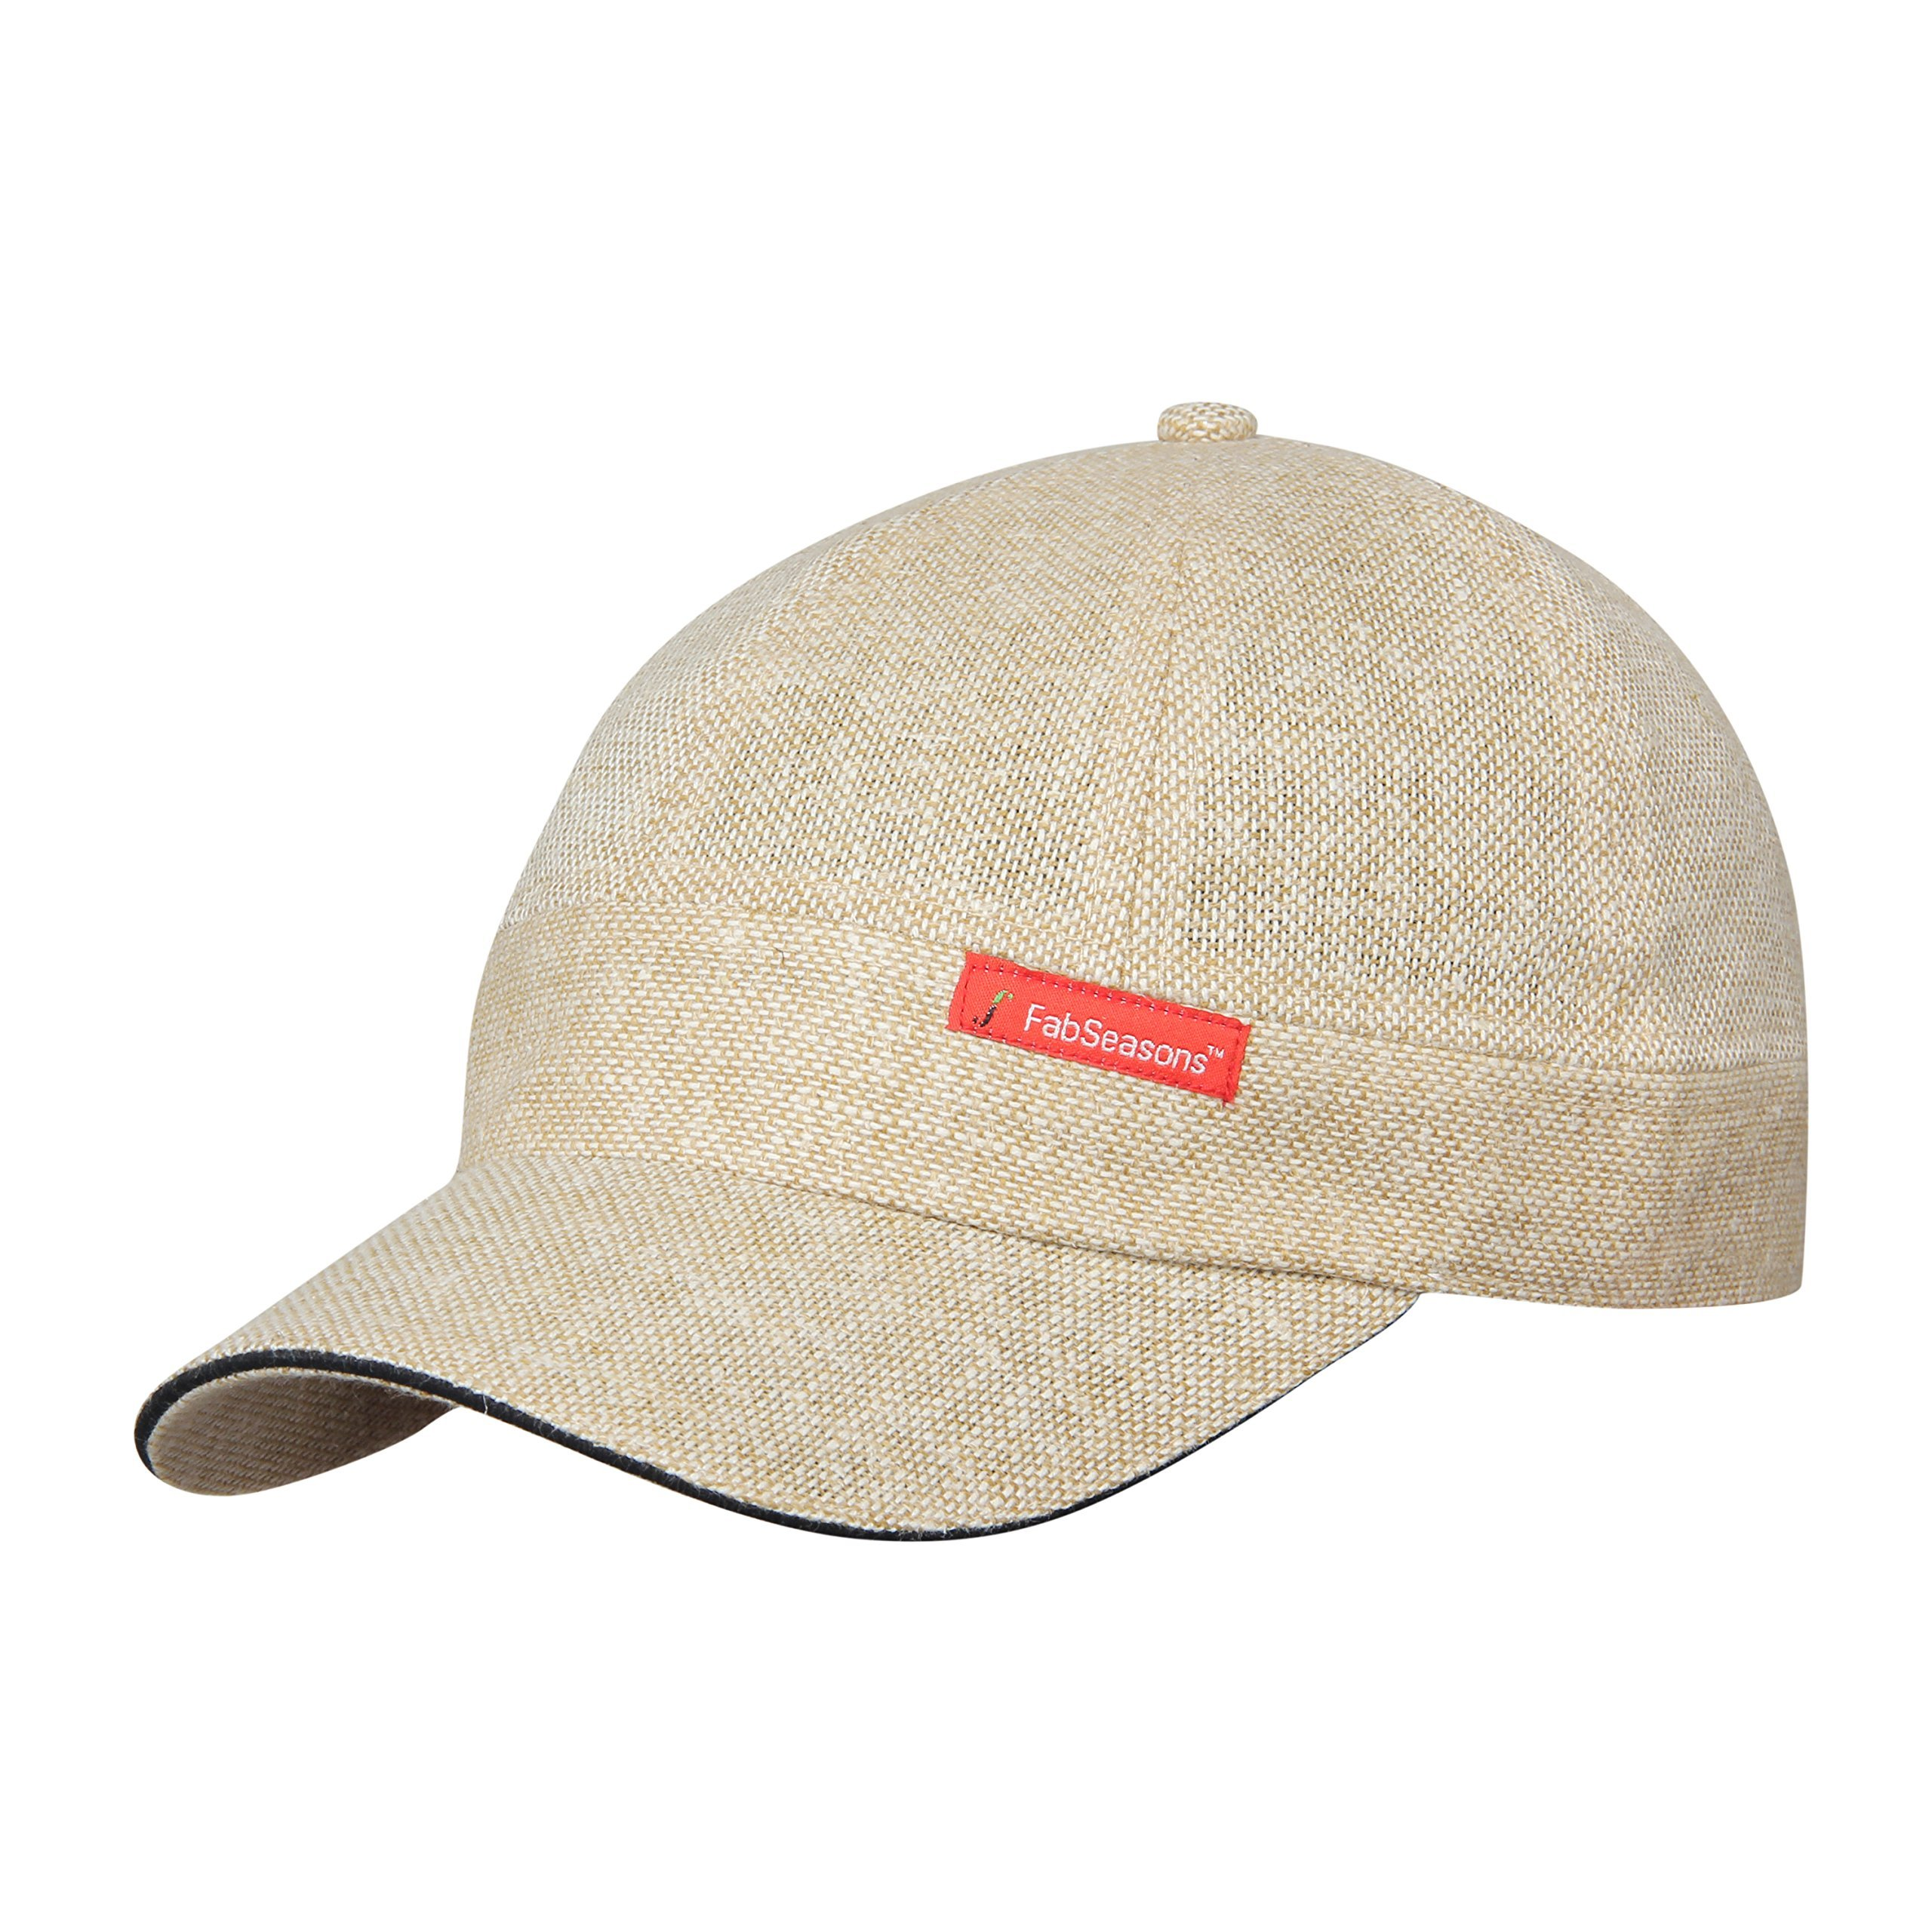 FabSeasons Men's Short Peak Cap 57cm Beige